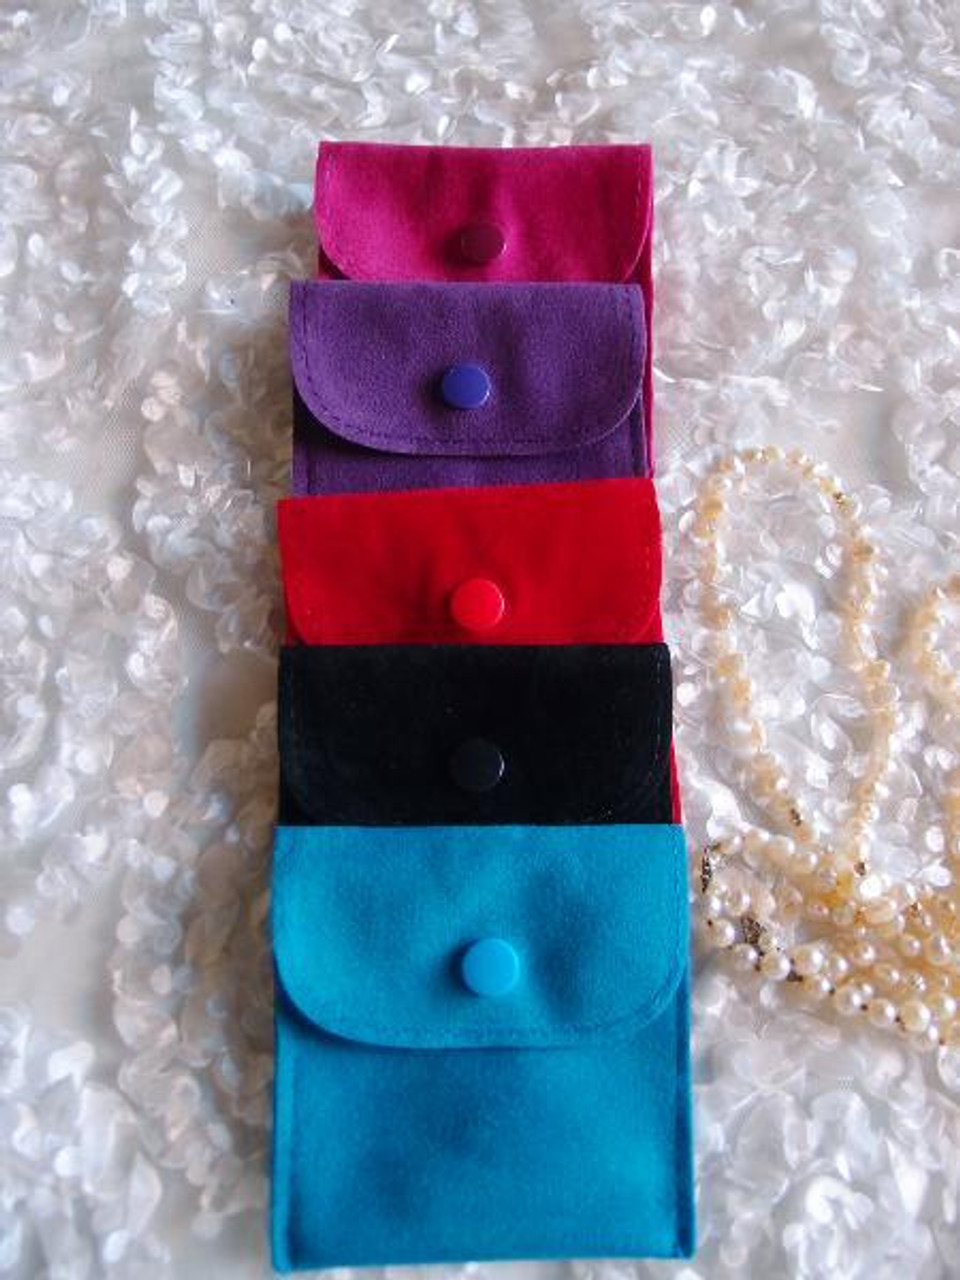 3 x 3 inches Roseberry Velvet Flapover Jewelry Pouch with Snap Fastener J134-09, Wholesale Velvet Jewelry Bags   Packaging Decor, Gift Packaging